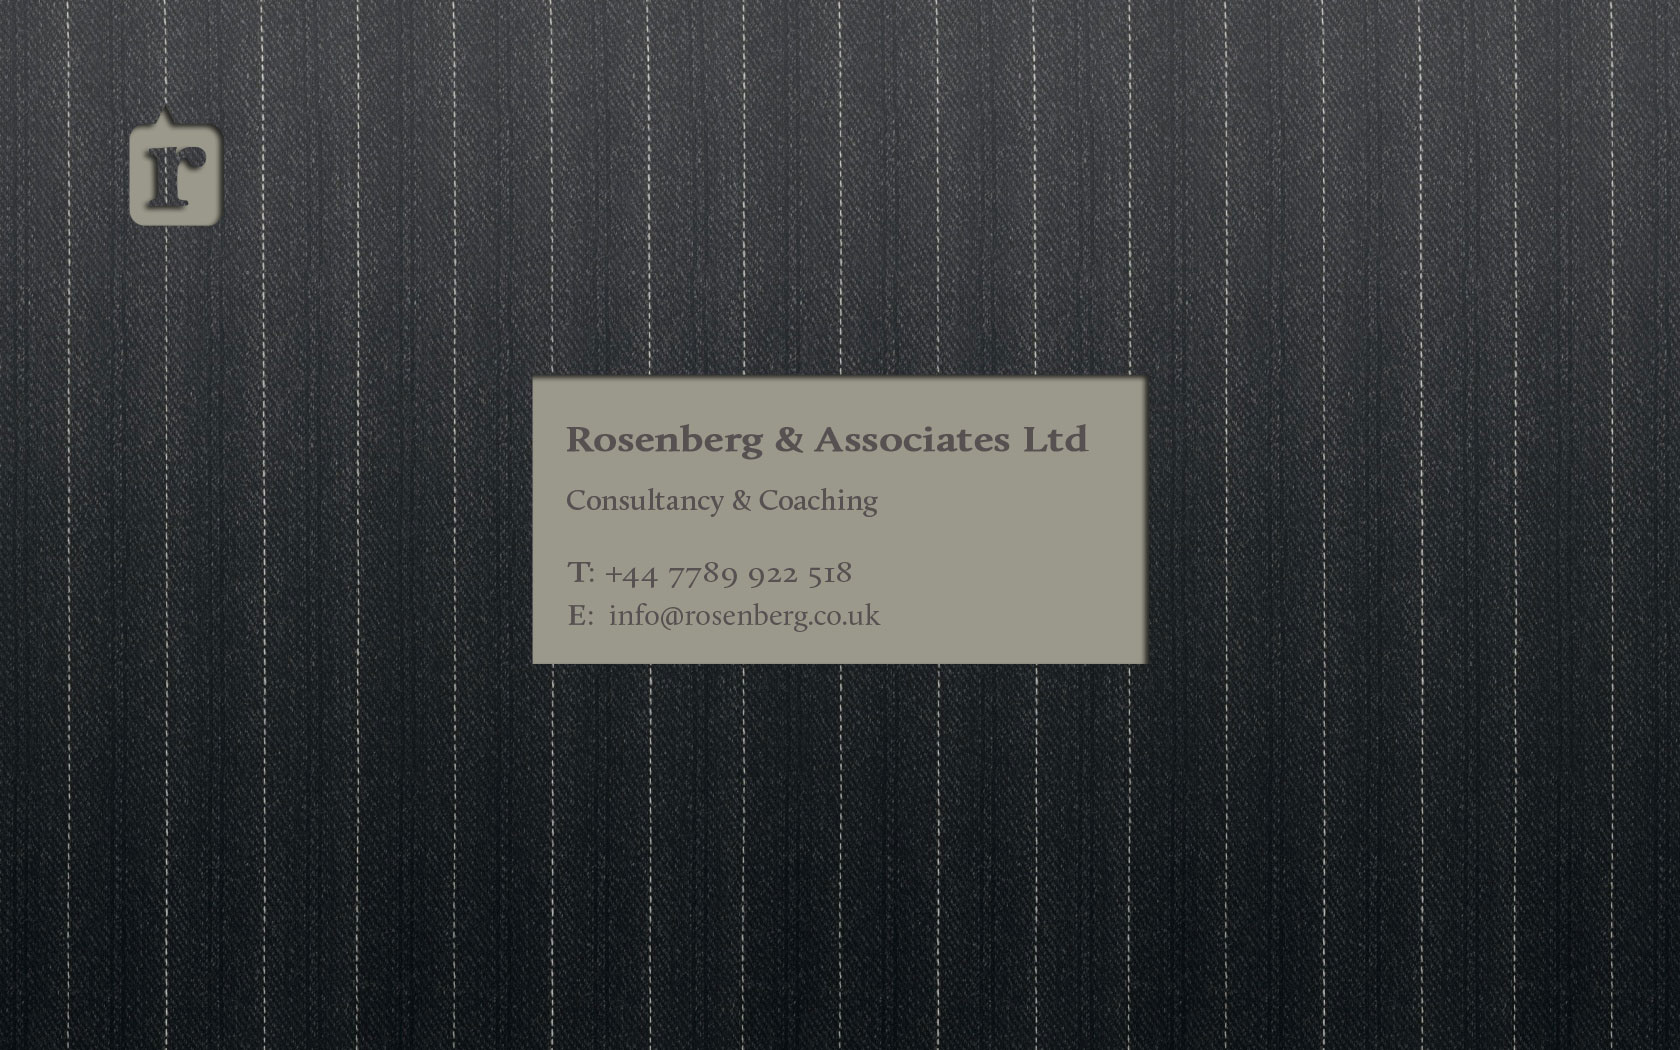 rosenberg.co.uk